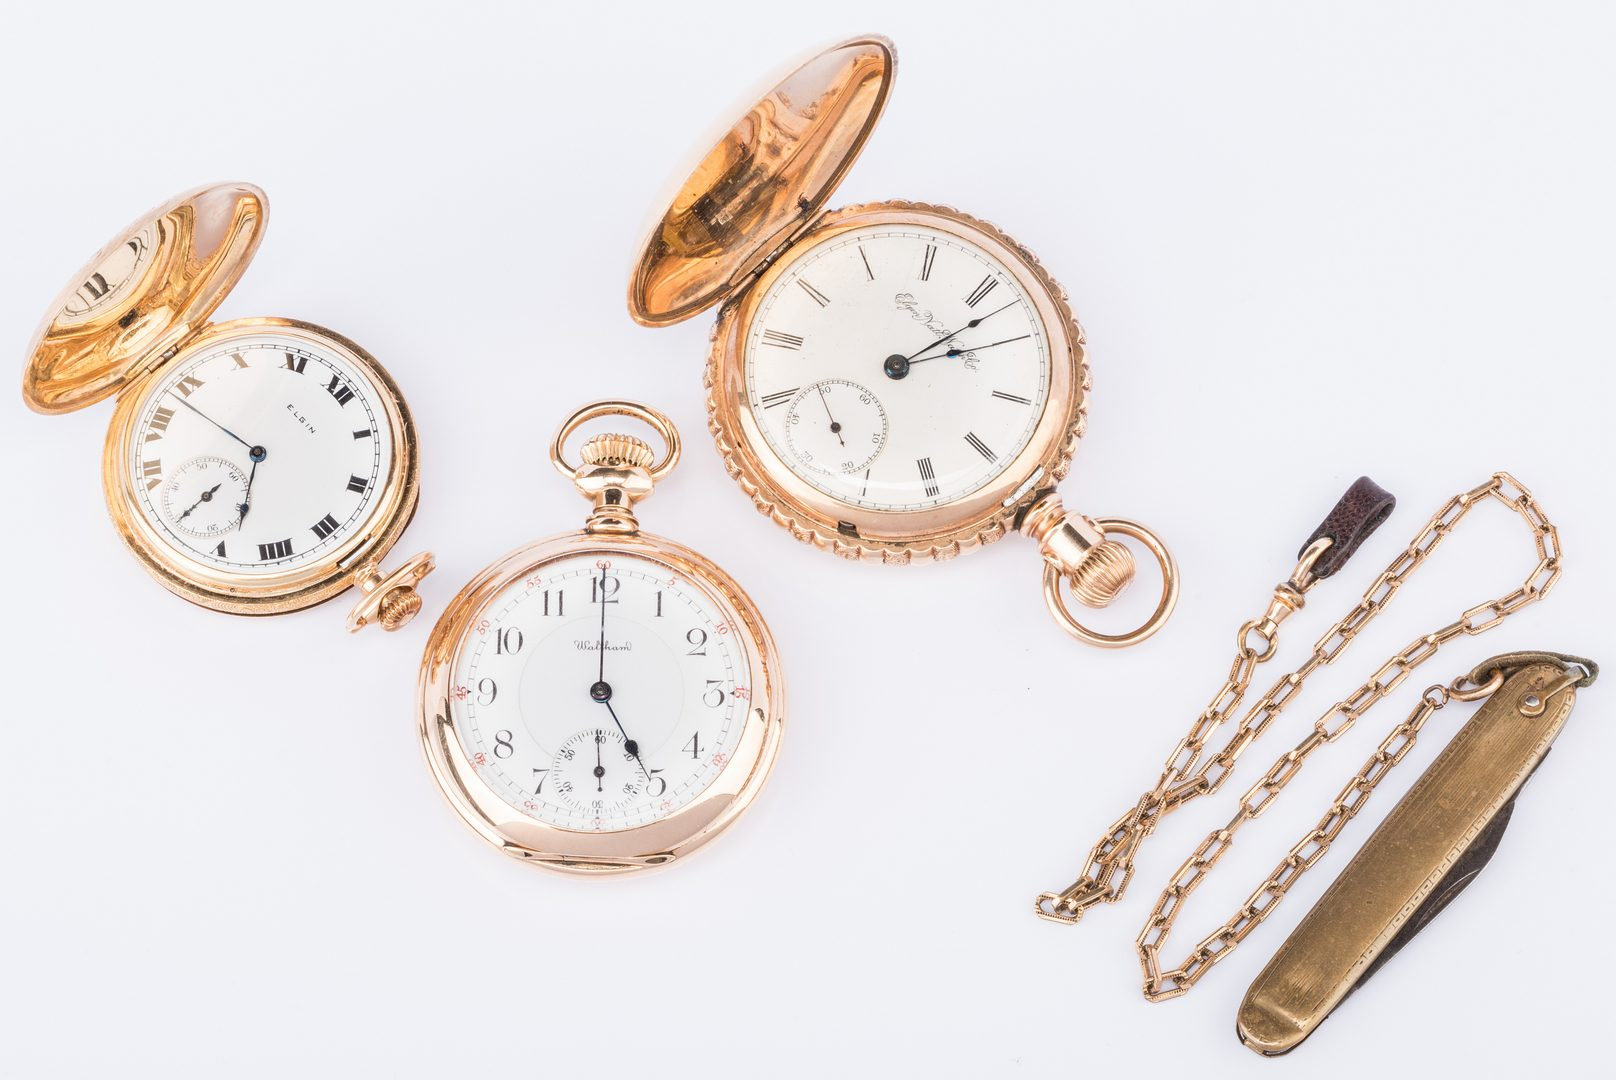 Lot 210: 2 14K Pocketwatches incl Railroad watch plus 1 other